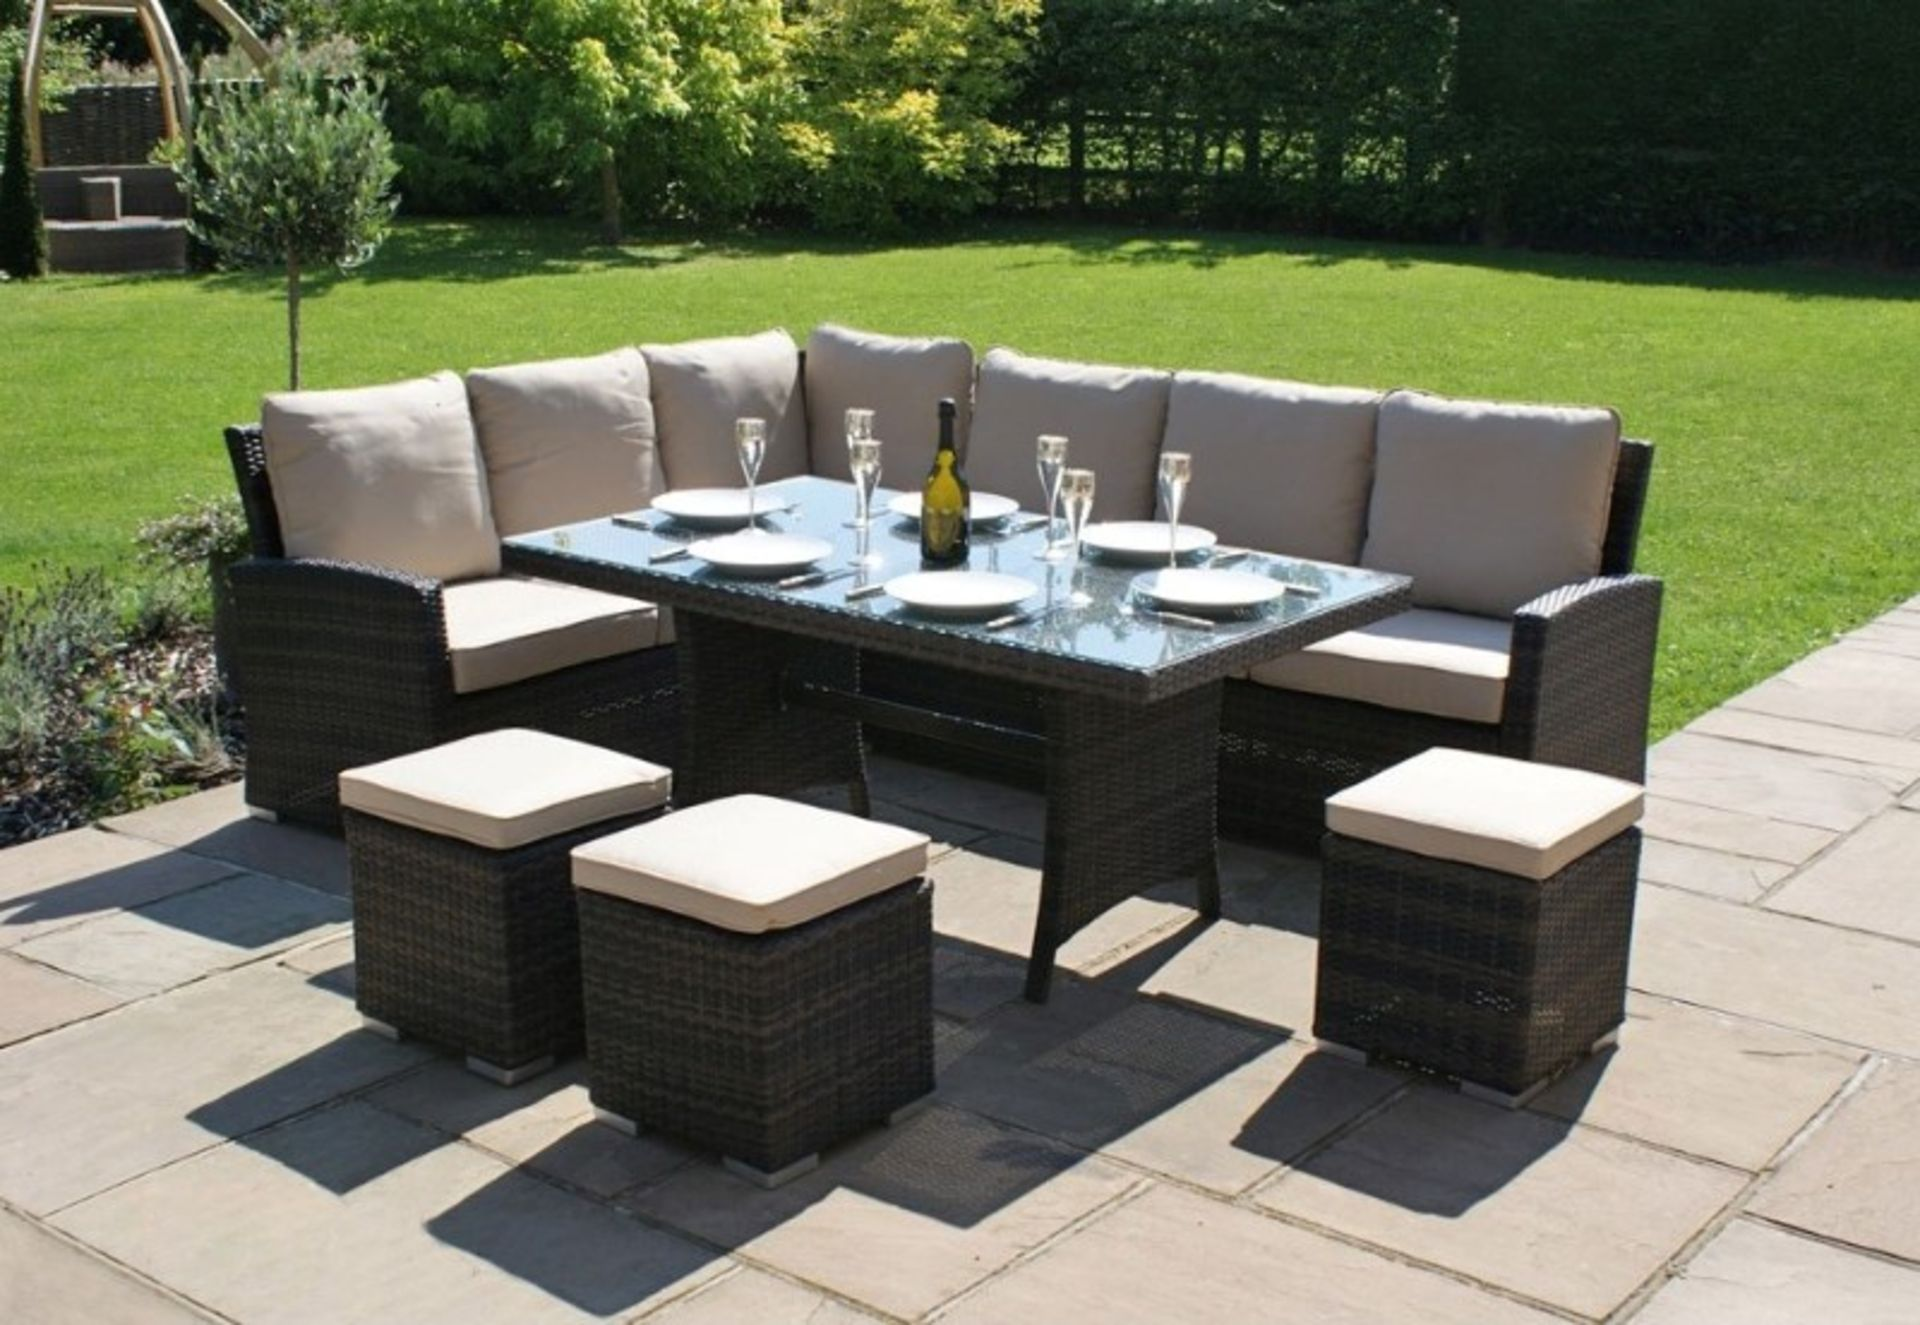 + VAT Brand New Chelsea Garden Company 8-Seater Brown Rattan Corner Dining Set With Ivory - Image 2 of 3